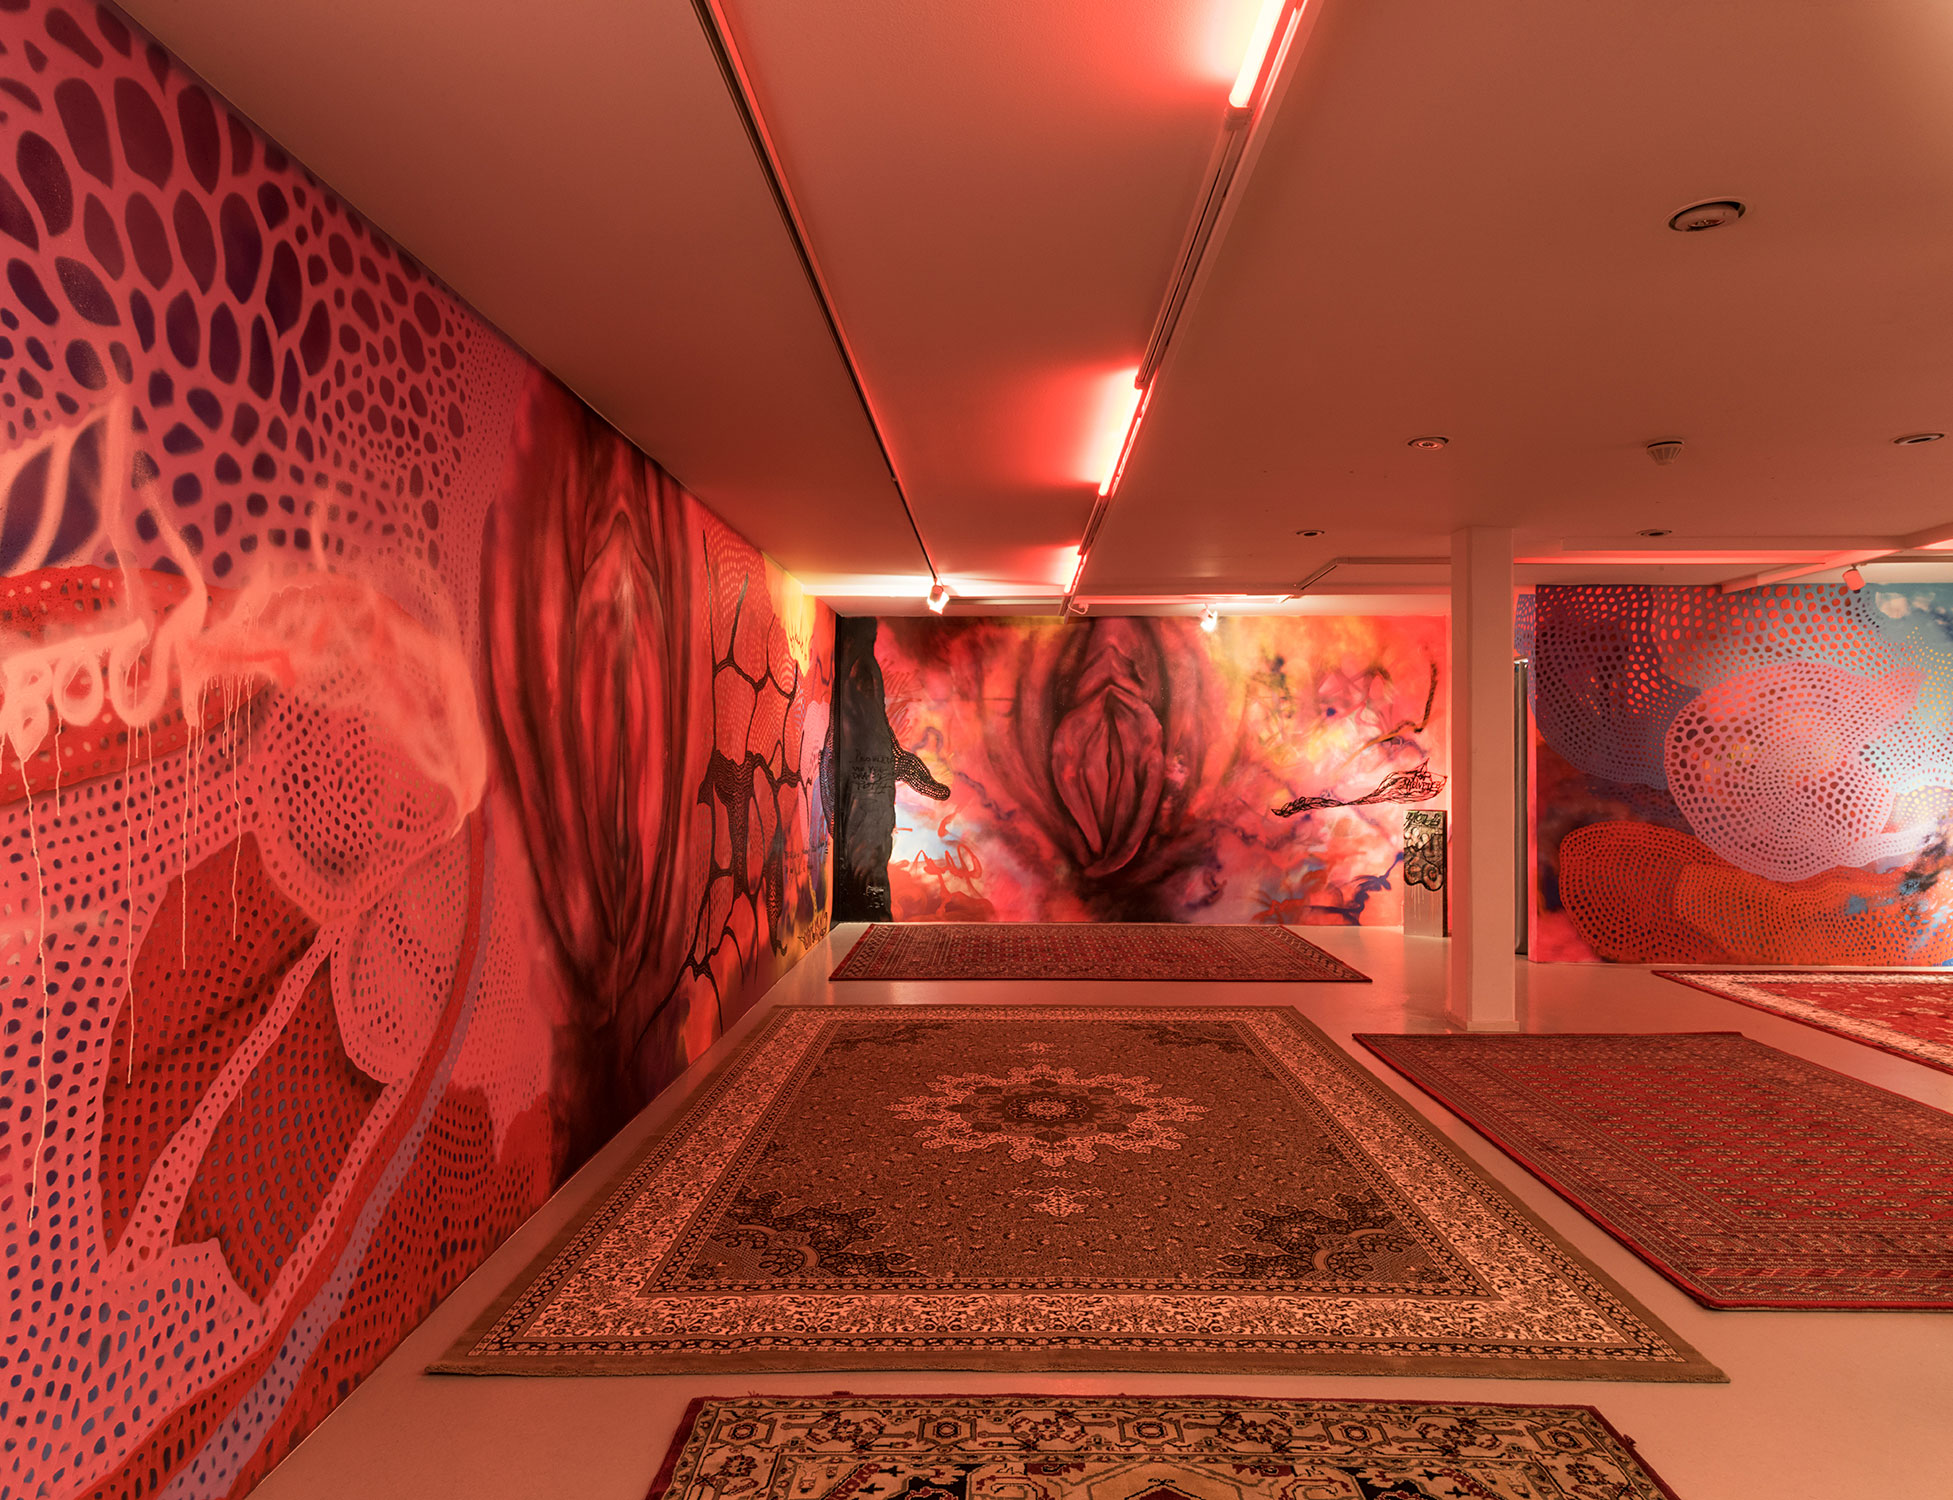 Carolina Falkholt 'Just because I flash my cunt does not mean I want to be raped', 2017, installation, sound, painting, sculpture and textile, Galleri Thomassen.